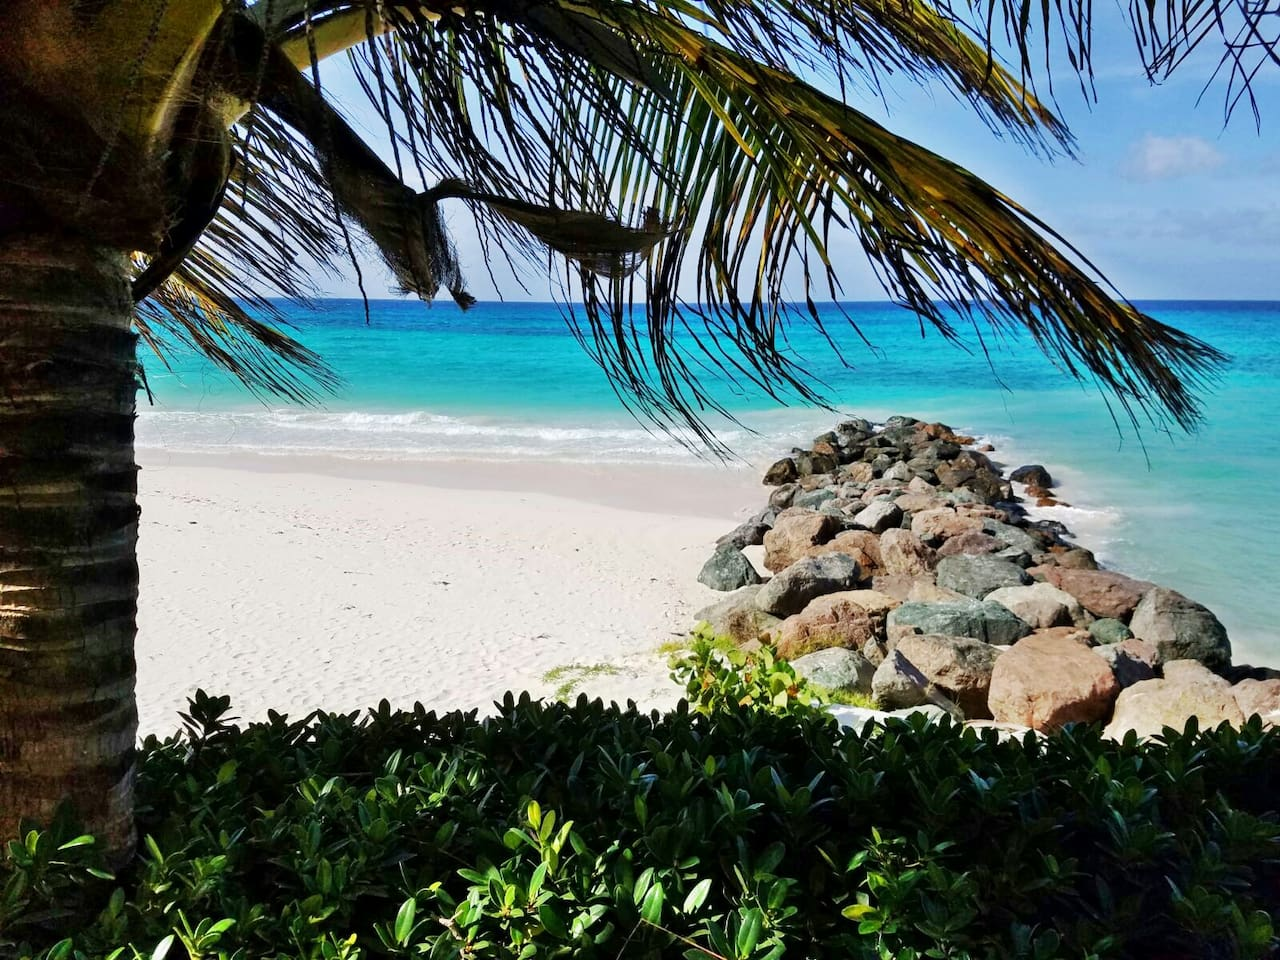 White sandy beaches and turquoise waters! Doesn't get much better than this!